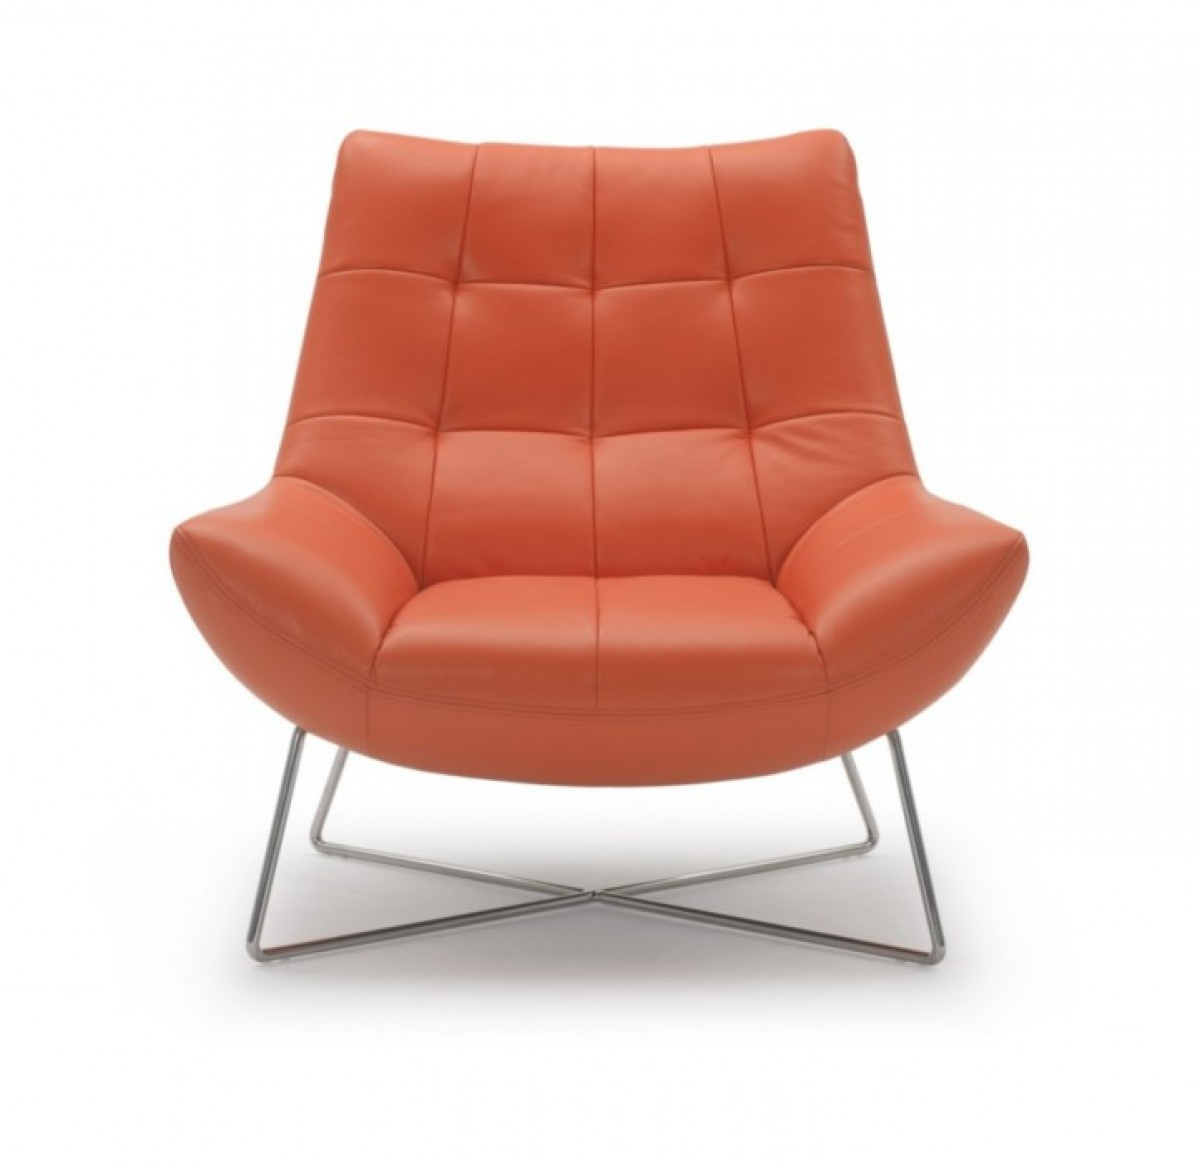 modern orange chair massage cozzia leather and stainless steel lounge